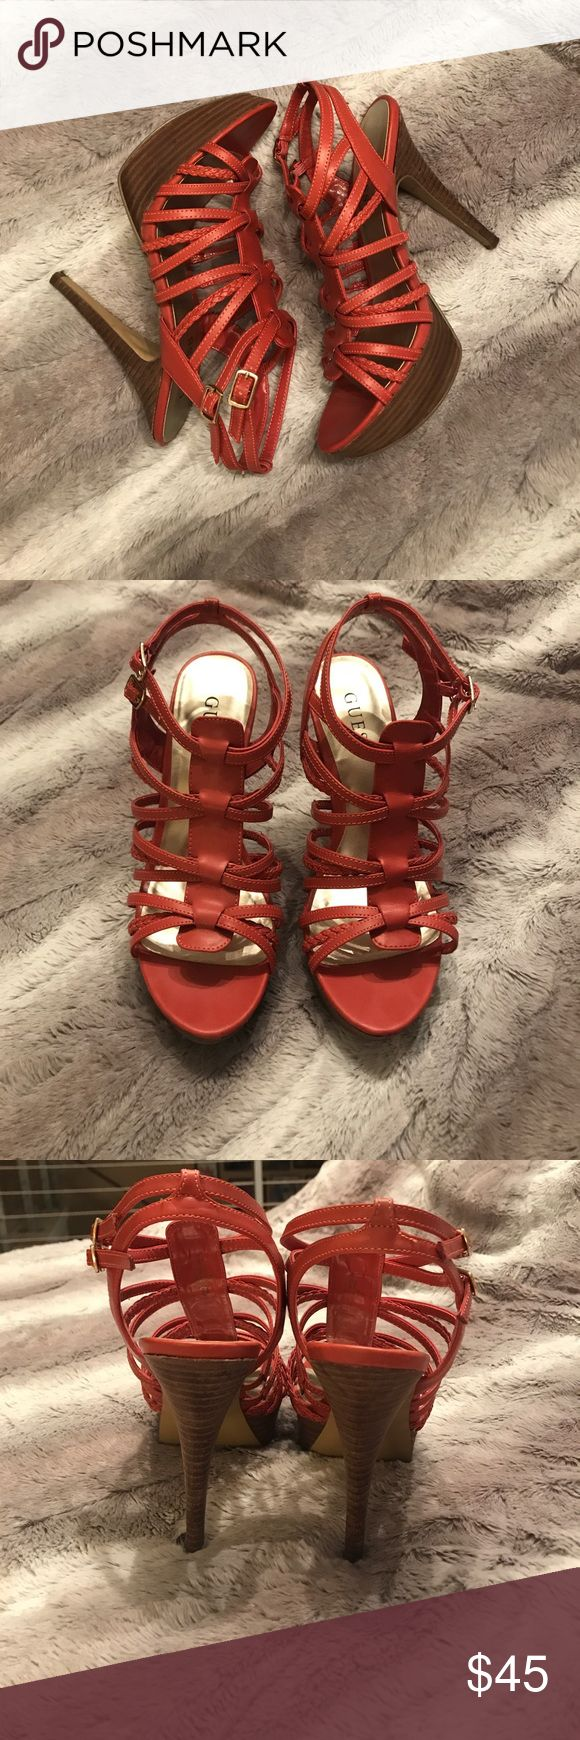 Guess Shoes. Dark Coral Leather Pumps. Size 8. Guess Shoes Dark Coral Pumps. Size 8. Worn twice. Great condition, great shoes. Given as a gift. Guess Shoes Heels